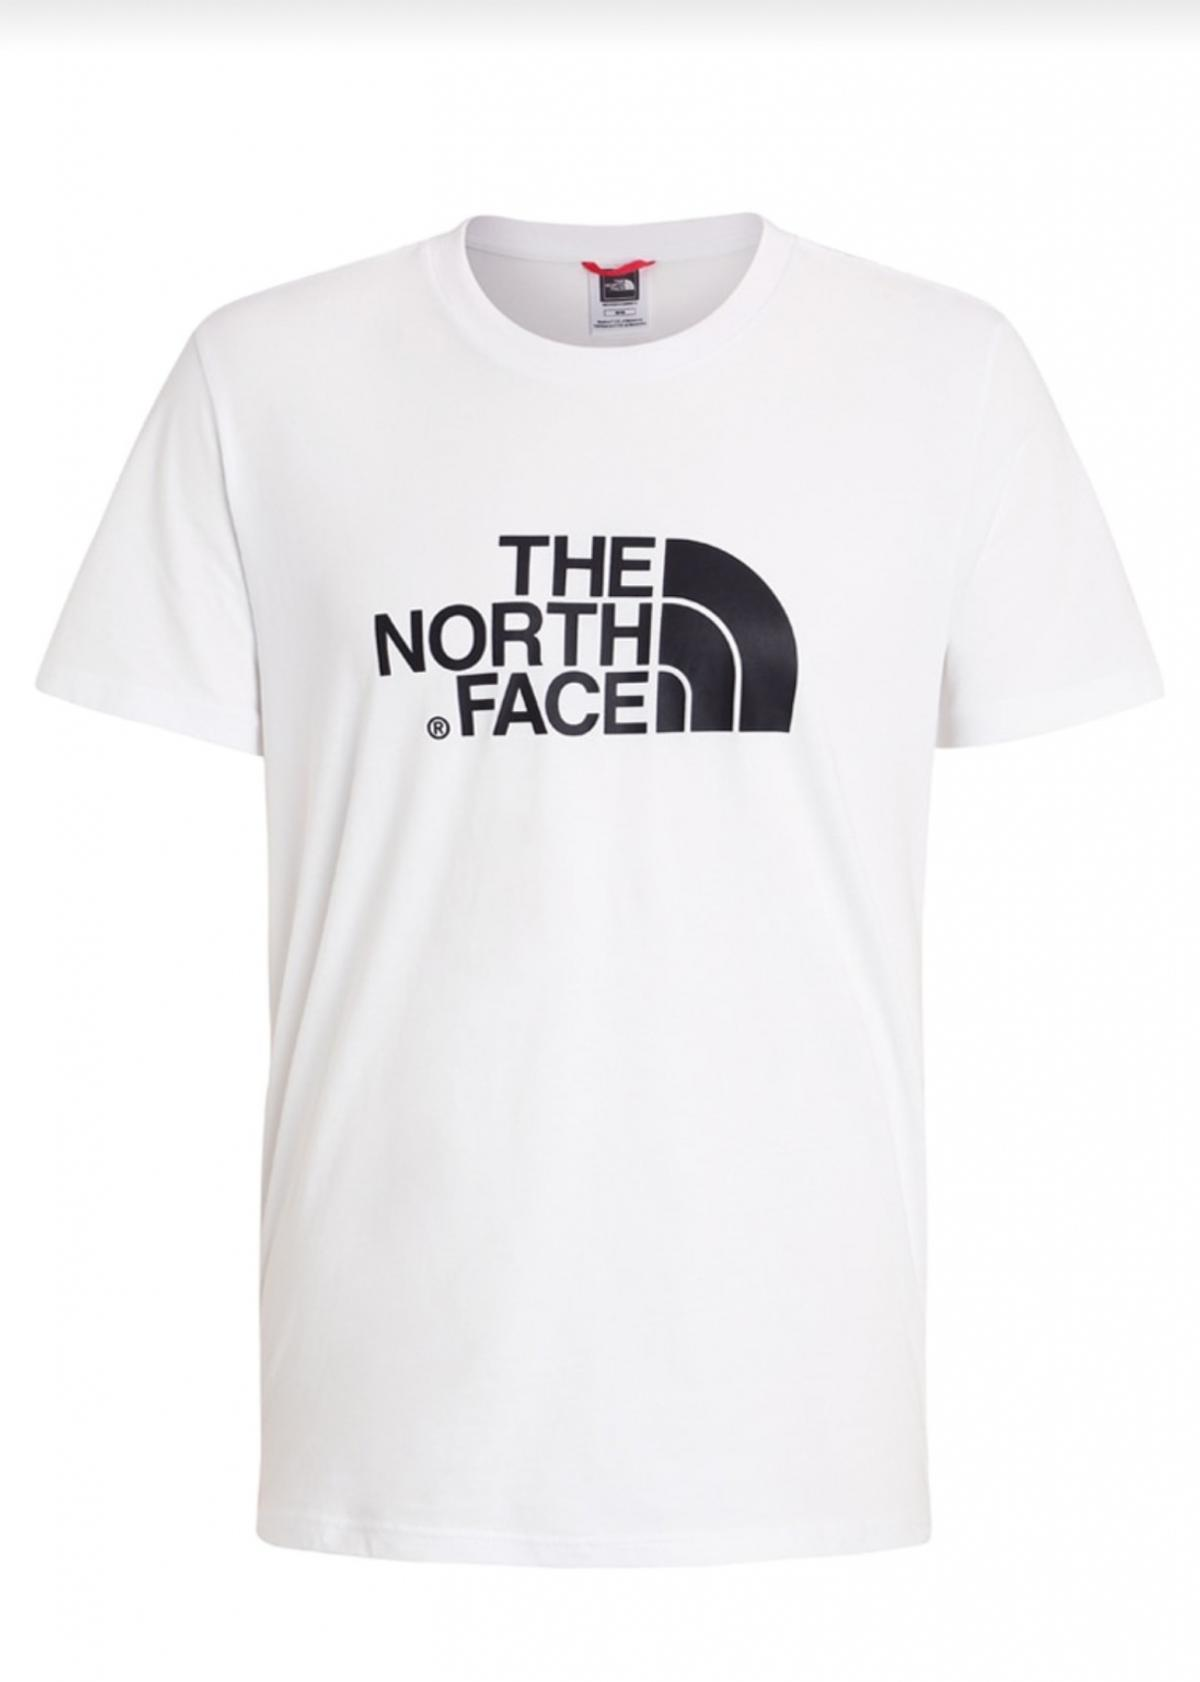 T-shirt the north face taglia M